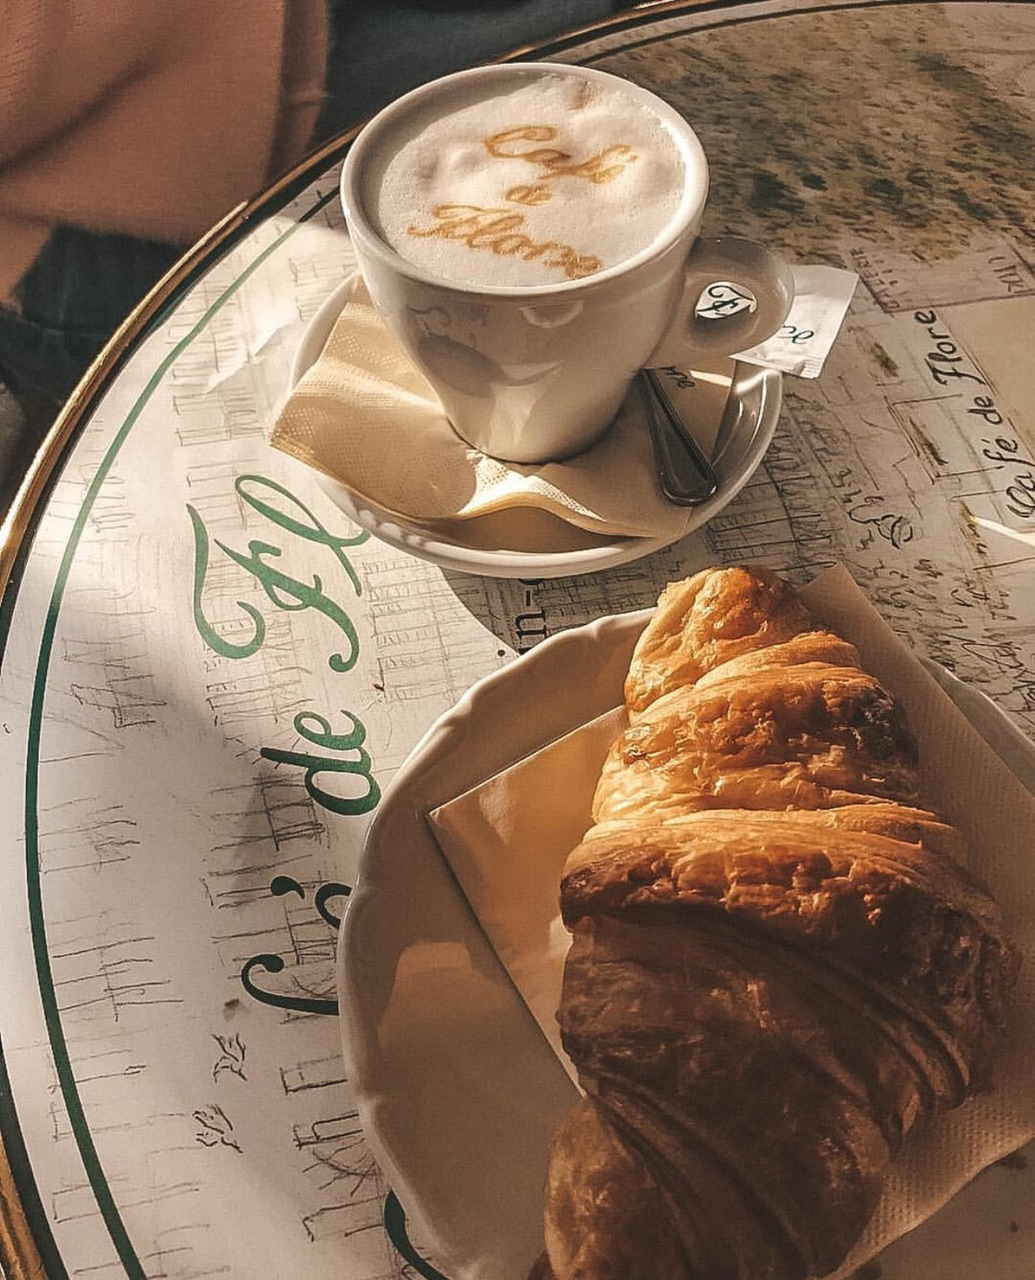 coffee, morning inspo, croissant and explore